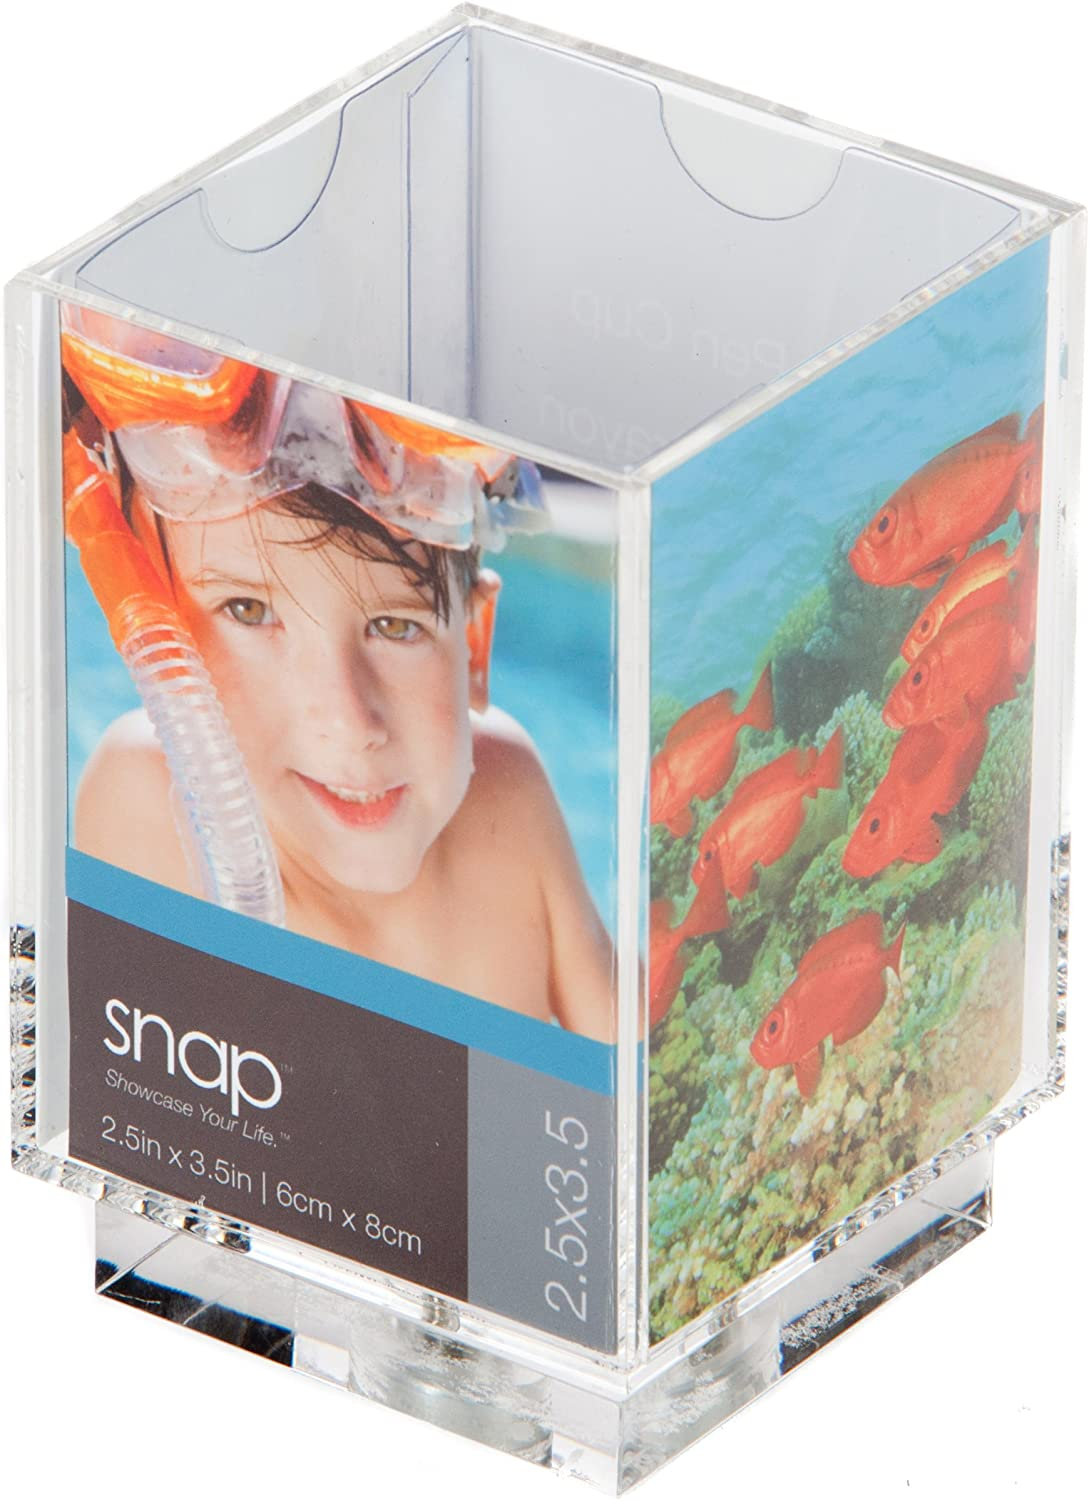 Snap Swivel Photo Pencil Holder 2-1 Sales results No. 1 3-1 High quality new 2-Inch by